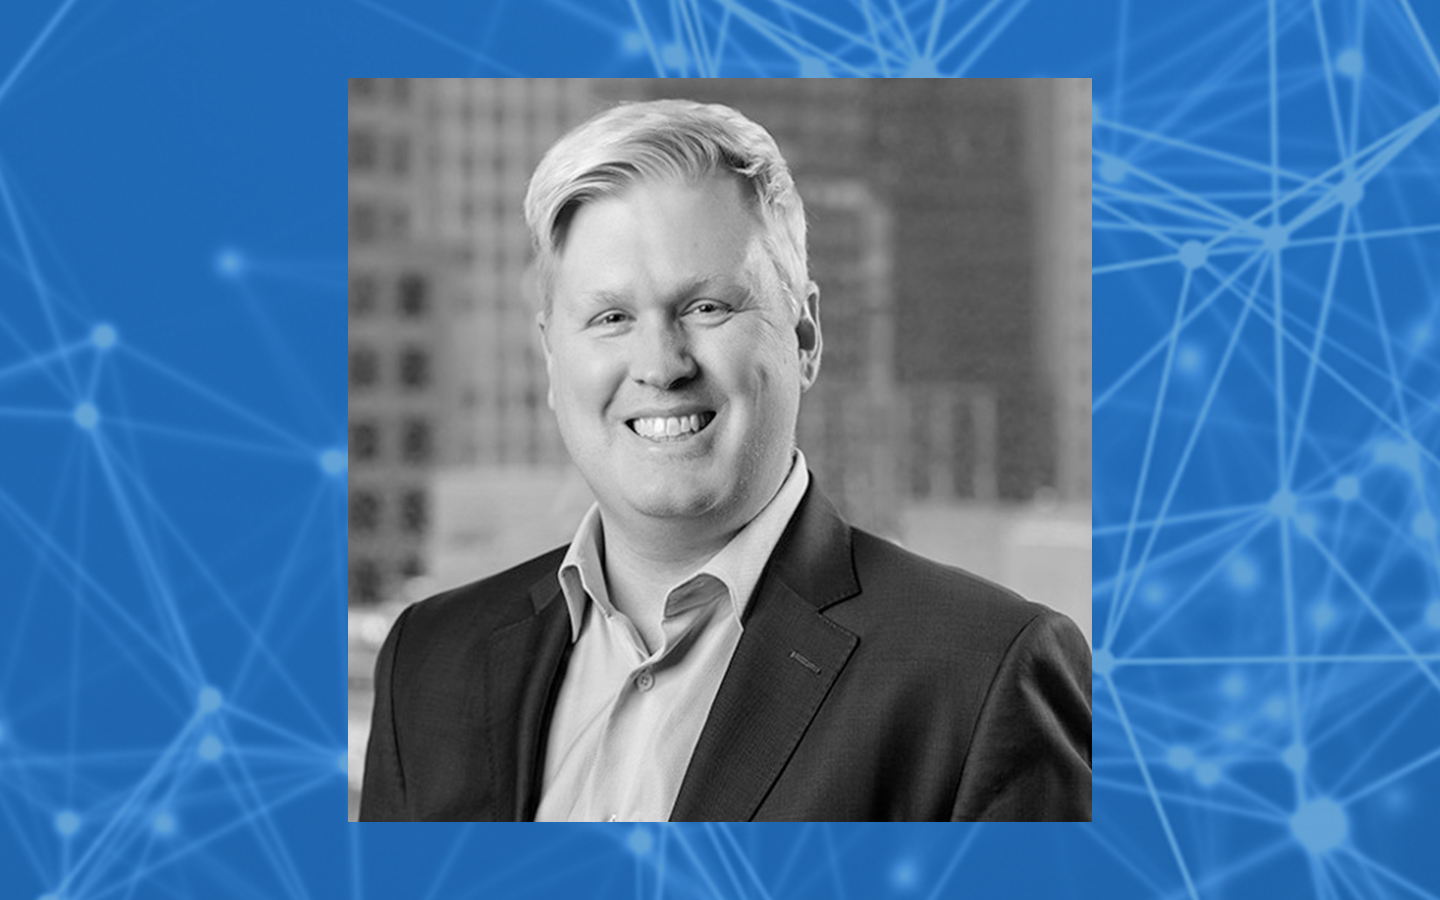 Press Release: The Financial Health Network Names Garry Reeder as VP Innovation and Policy